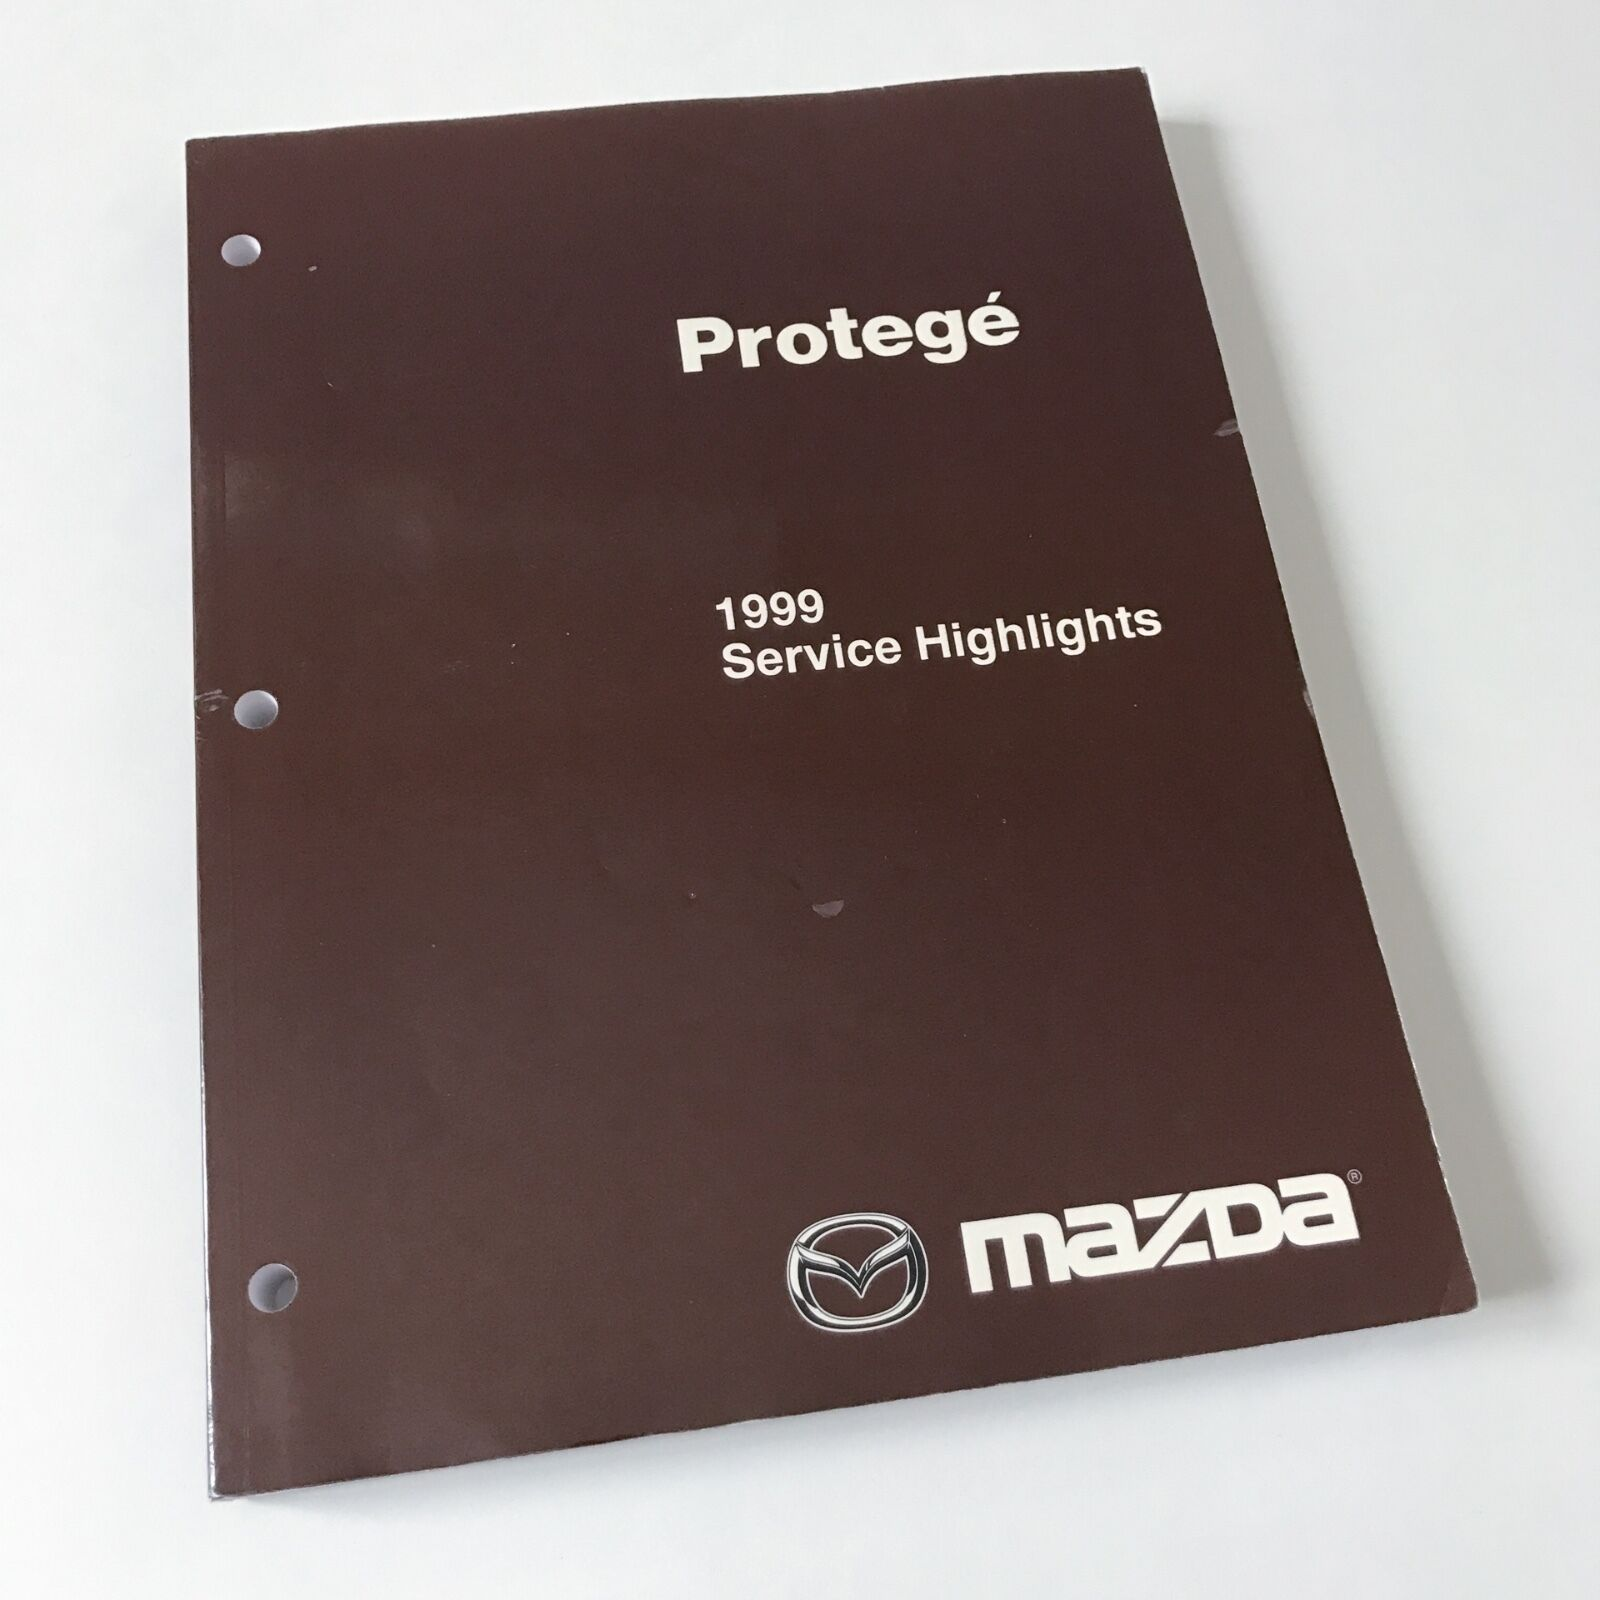 NEW 1999 Mazda Protege Factory OEM Workshop Service Highlights Repair Manual  1 of 1Only 4 available ...